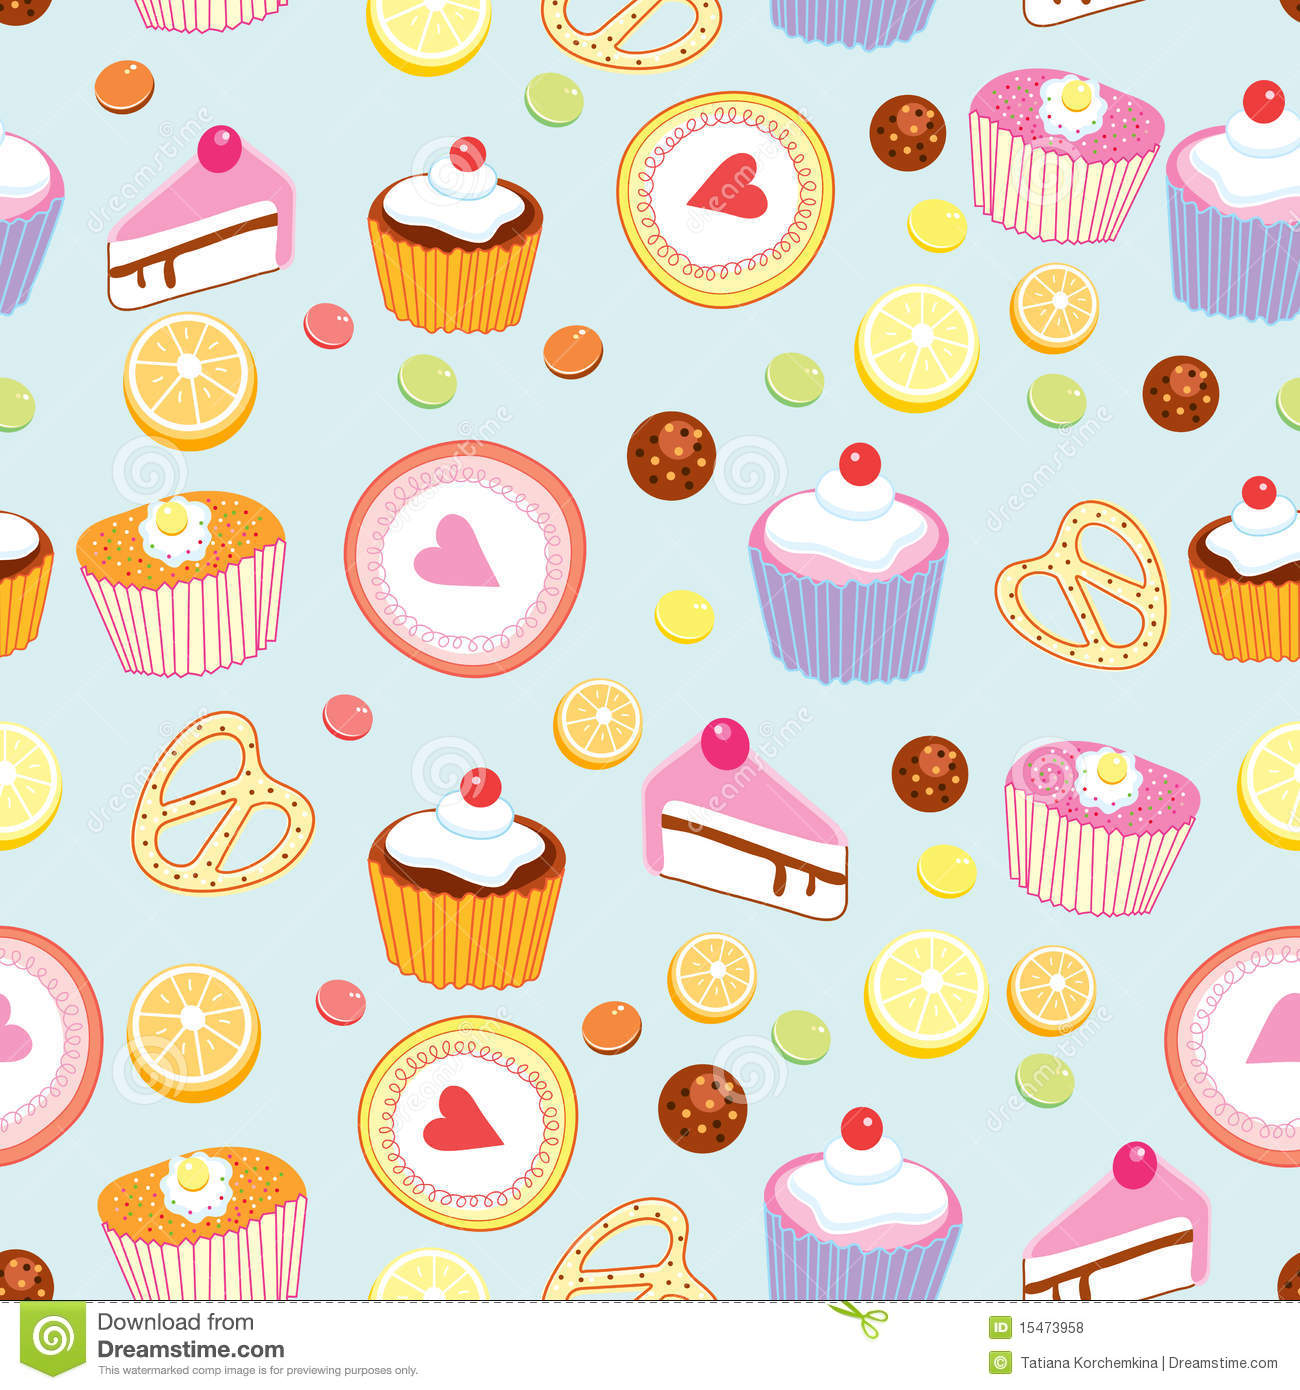 Design Patterns Of Cake : Pattern Of Cakes And Pastries Royalty Free Stock Photos ...